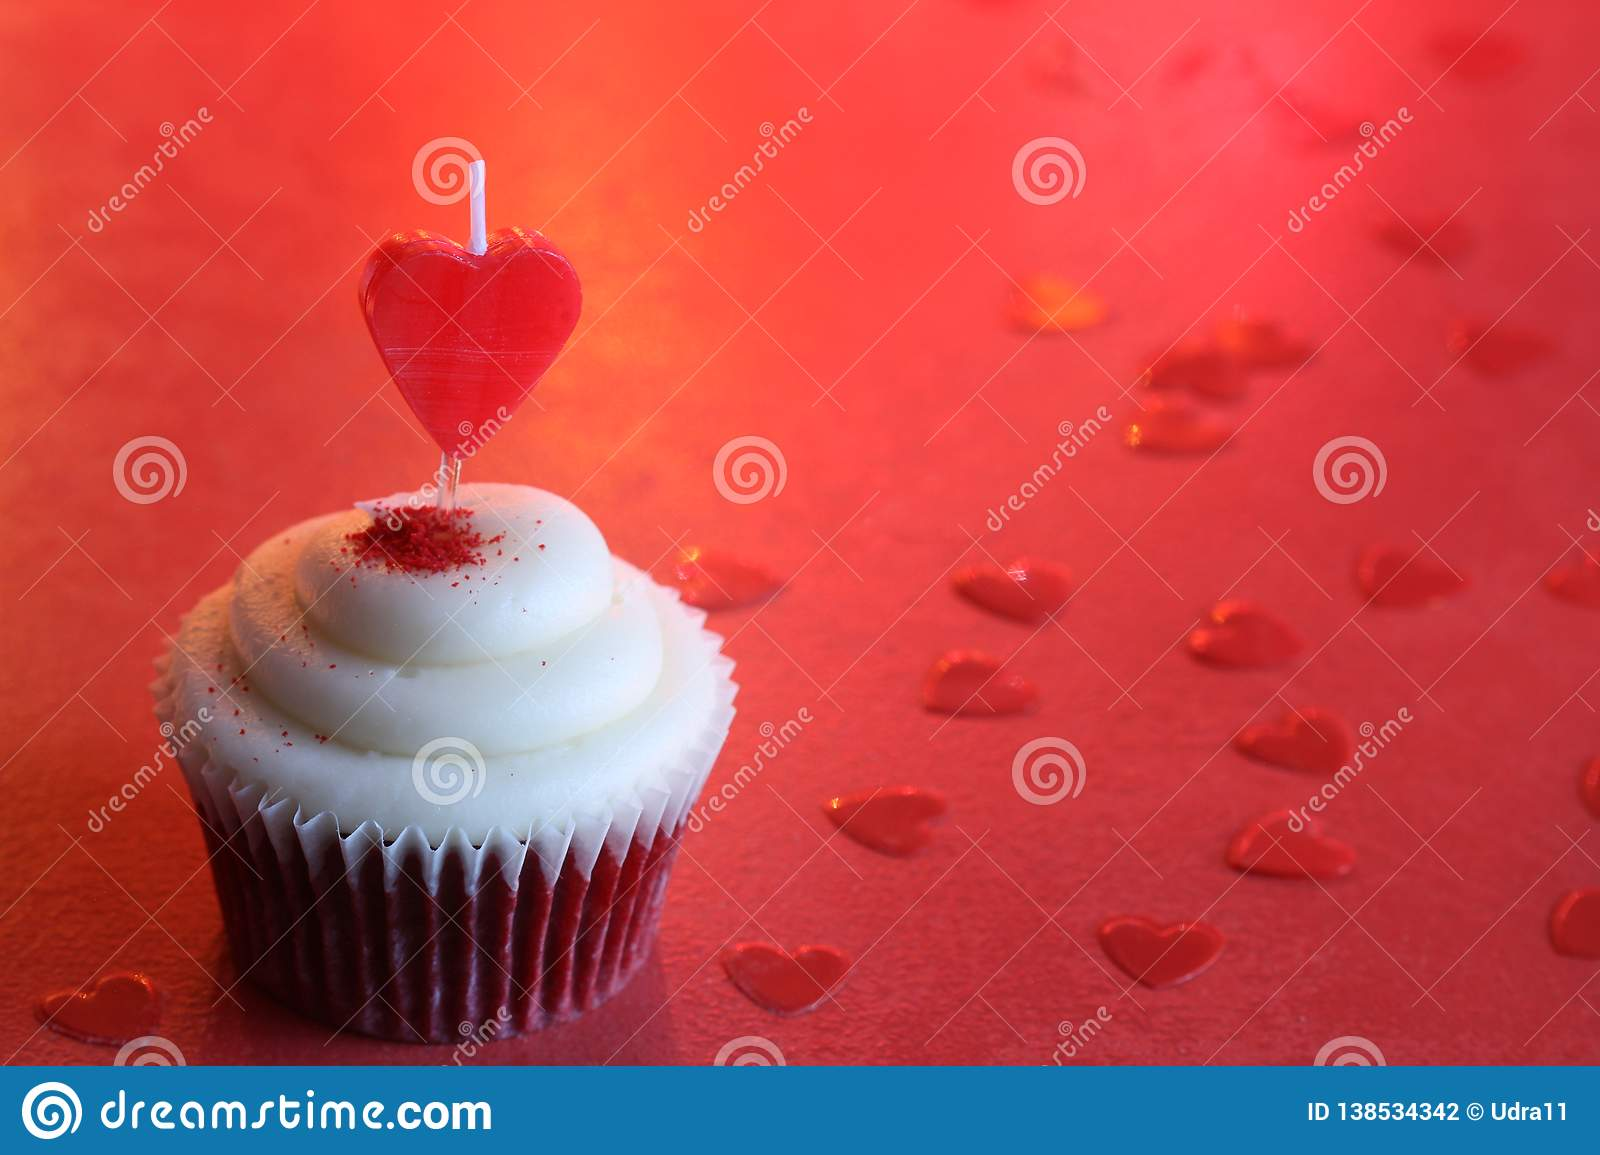 Heart candle in the cupcake on the love abstract defocused valentines day red background